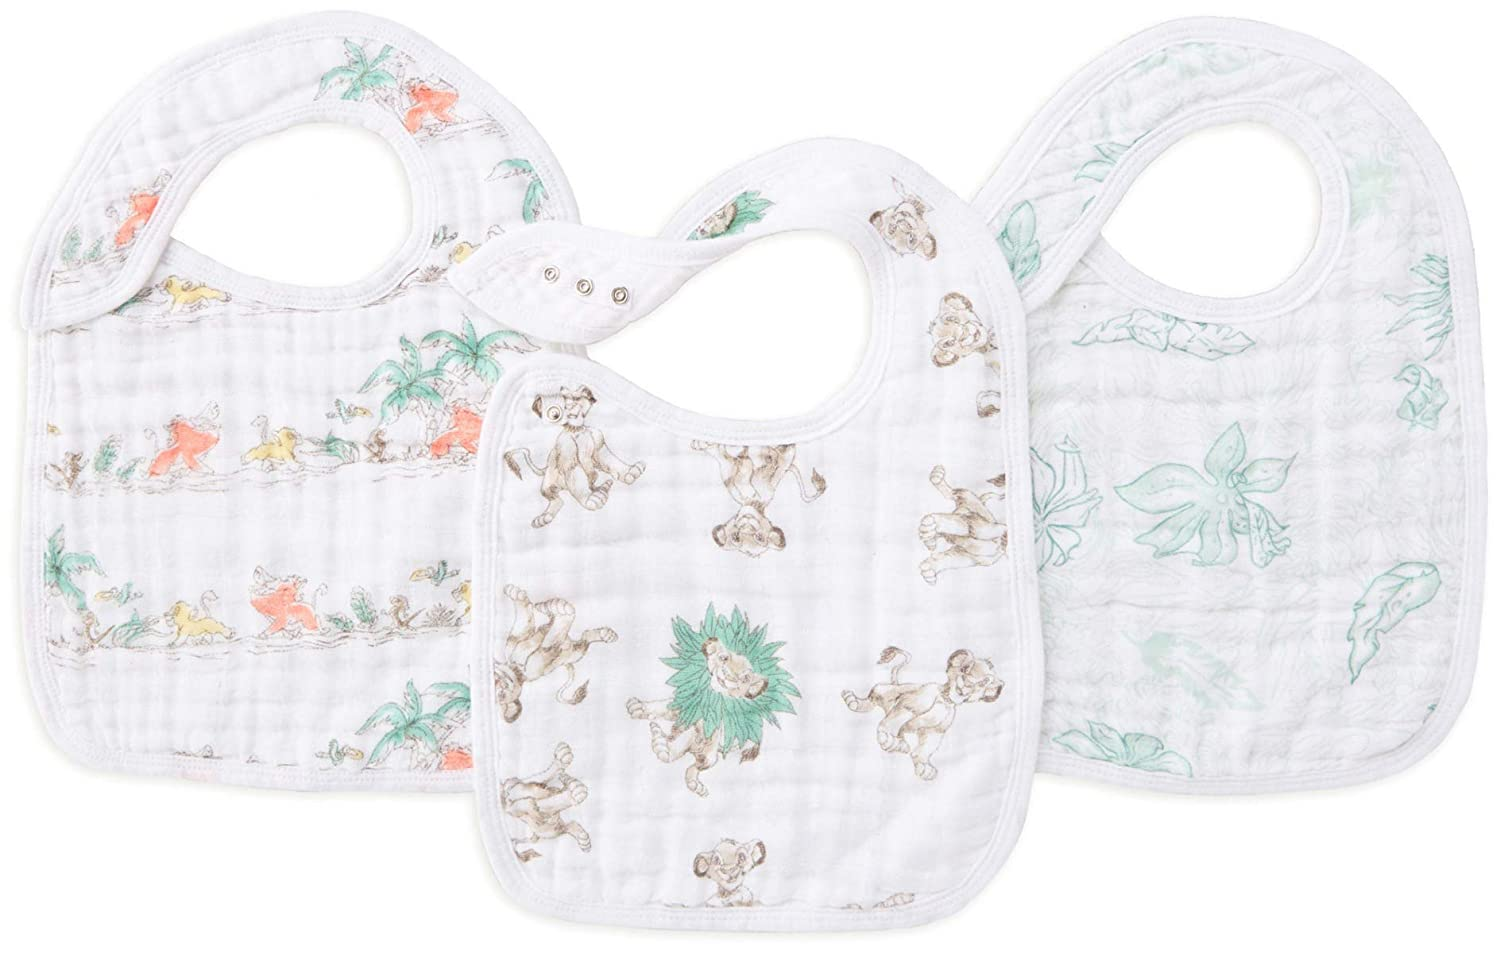 aden anais Winnie The Pooh Disney Baby Snap Bibs Pack of 3